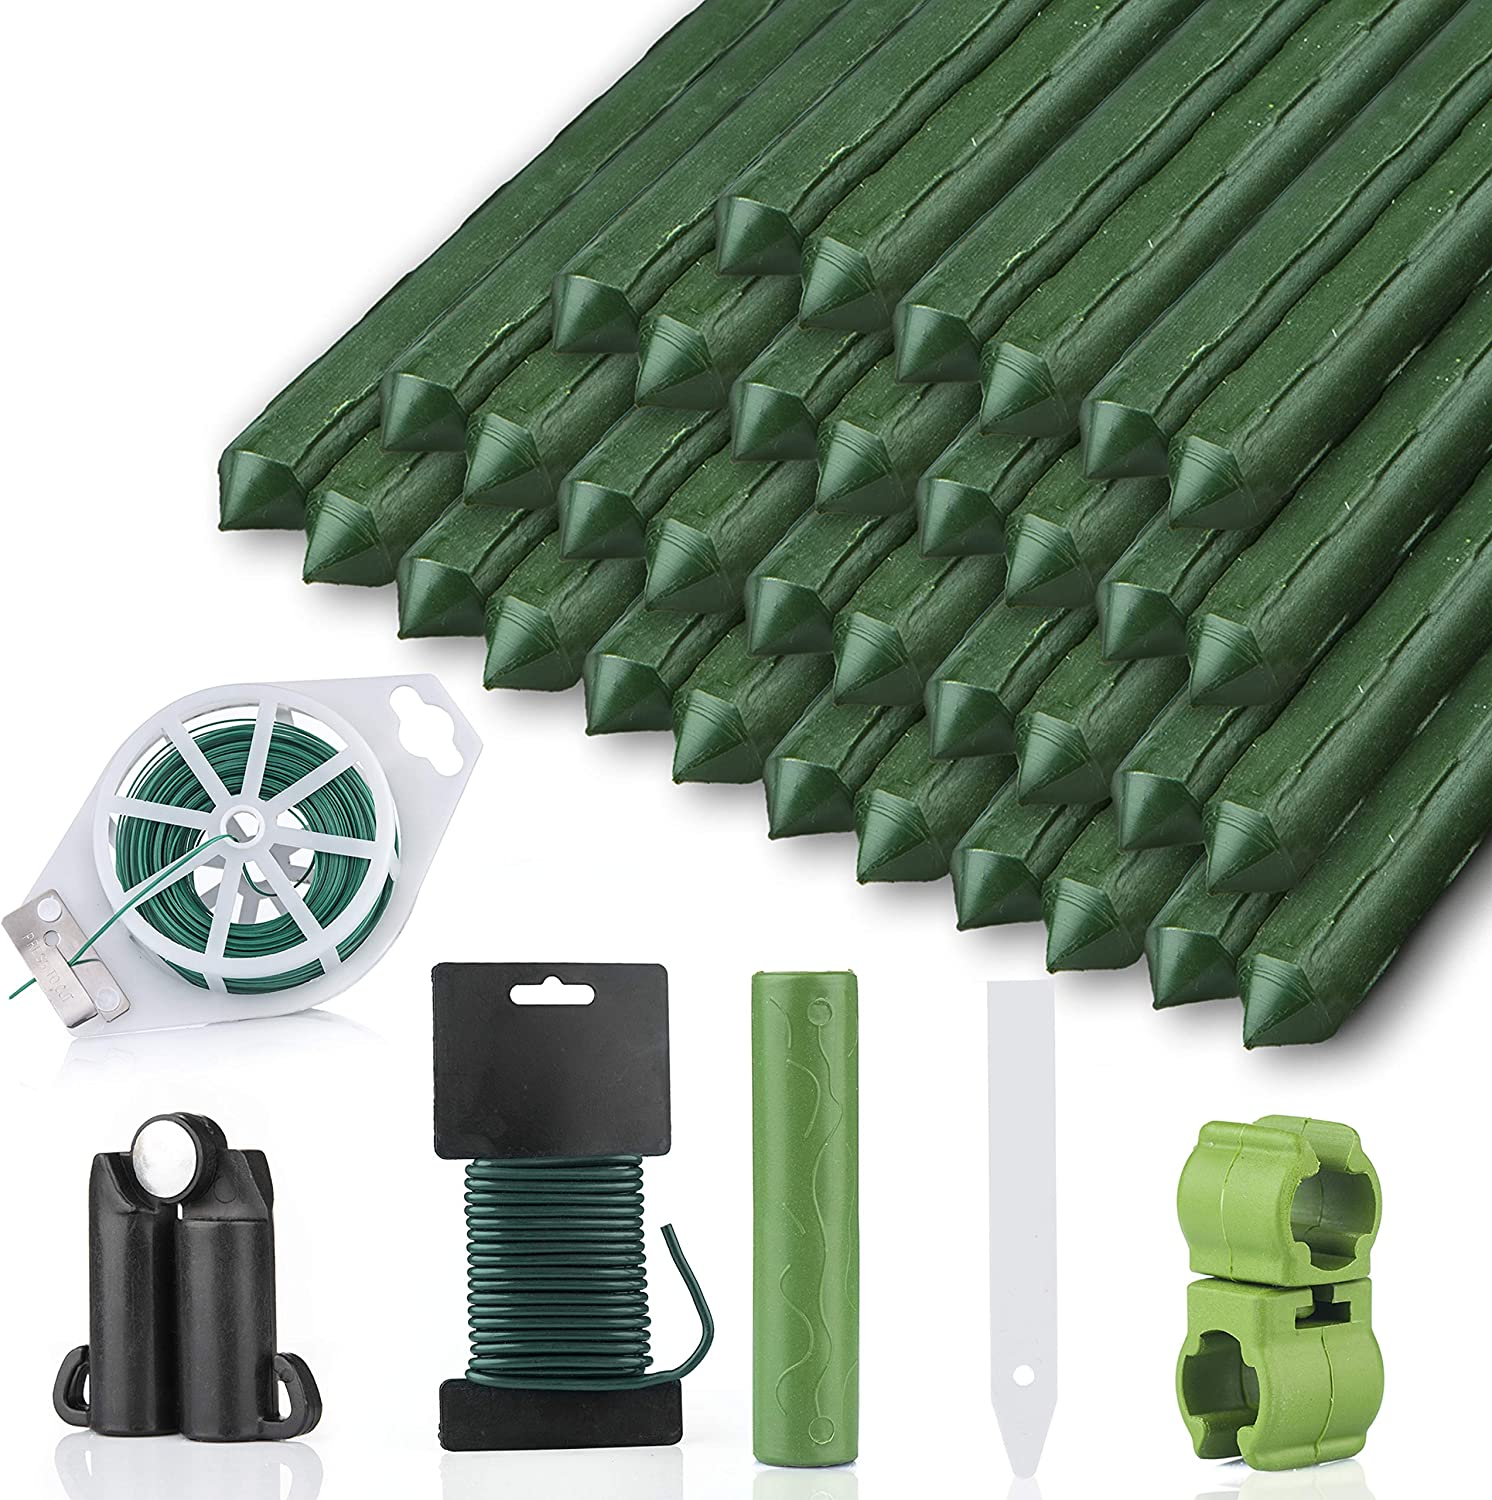 Ampio Home Garden Stakes Kit - 60 Inch (5FT) Pack of 25- Sturdy Metal Plant Stake - Green Plastic Coated Steel Stick Plant Support - Tomato, Beans, Trees, Roses, Cucumbers